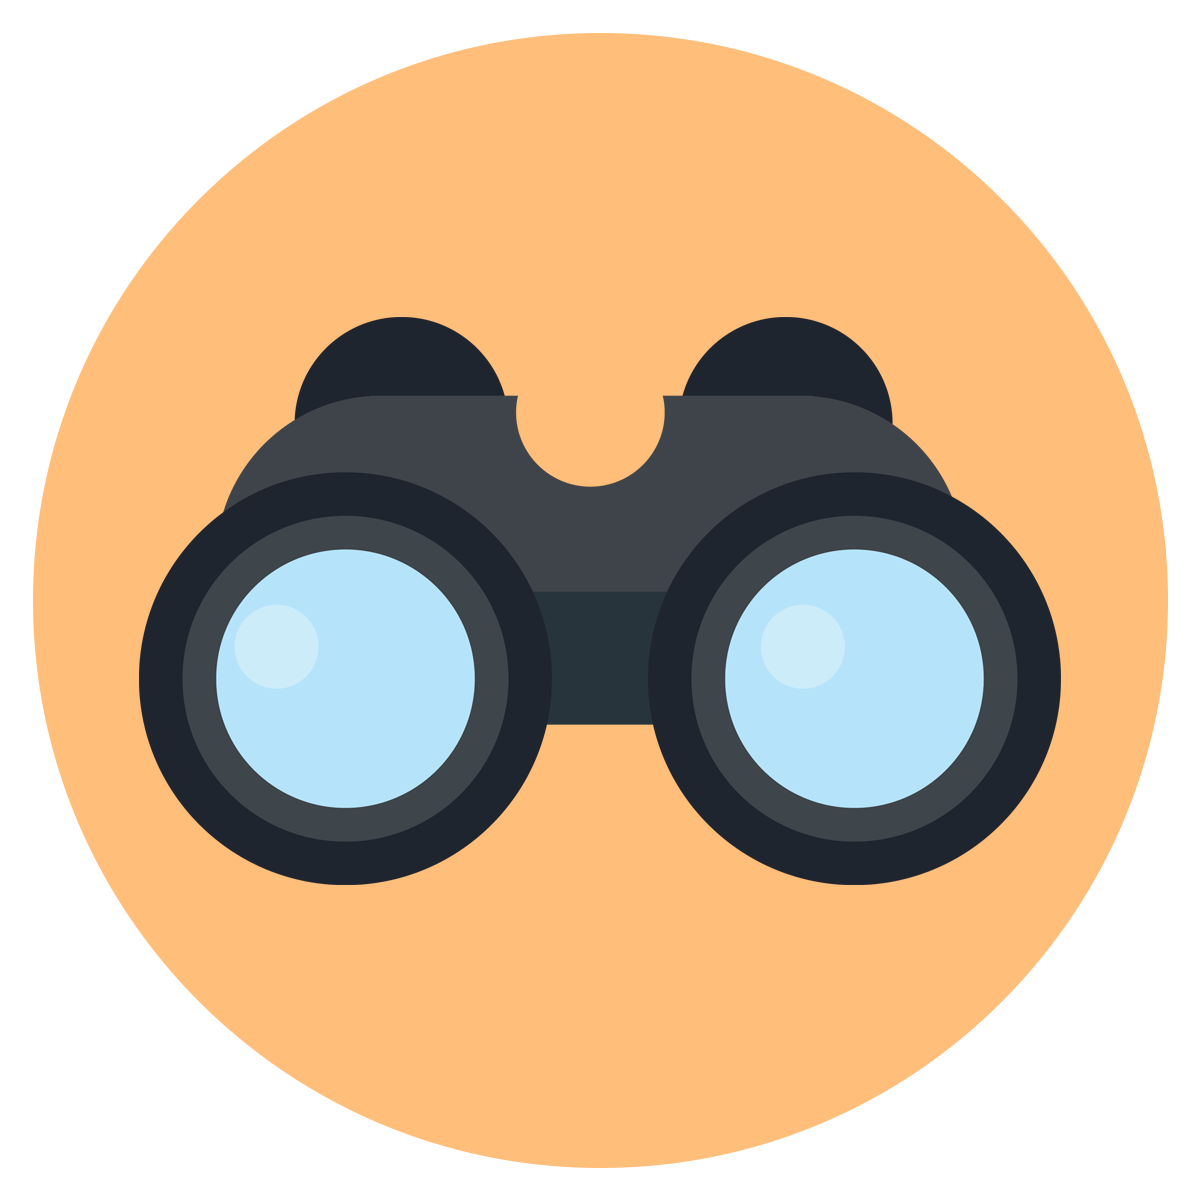 svg transparent Mission and chef tony. Vision clipart binoculars